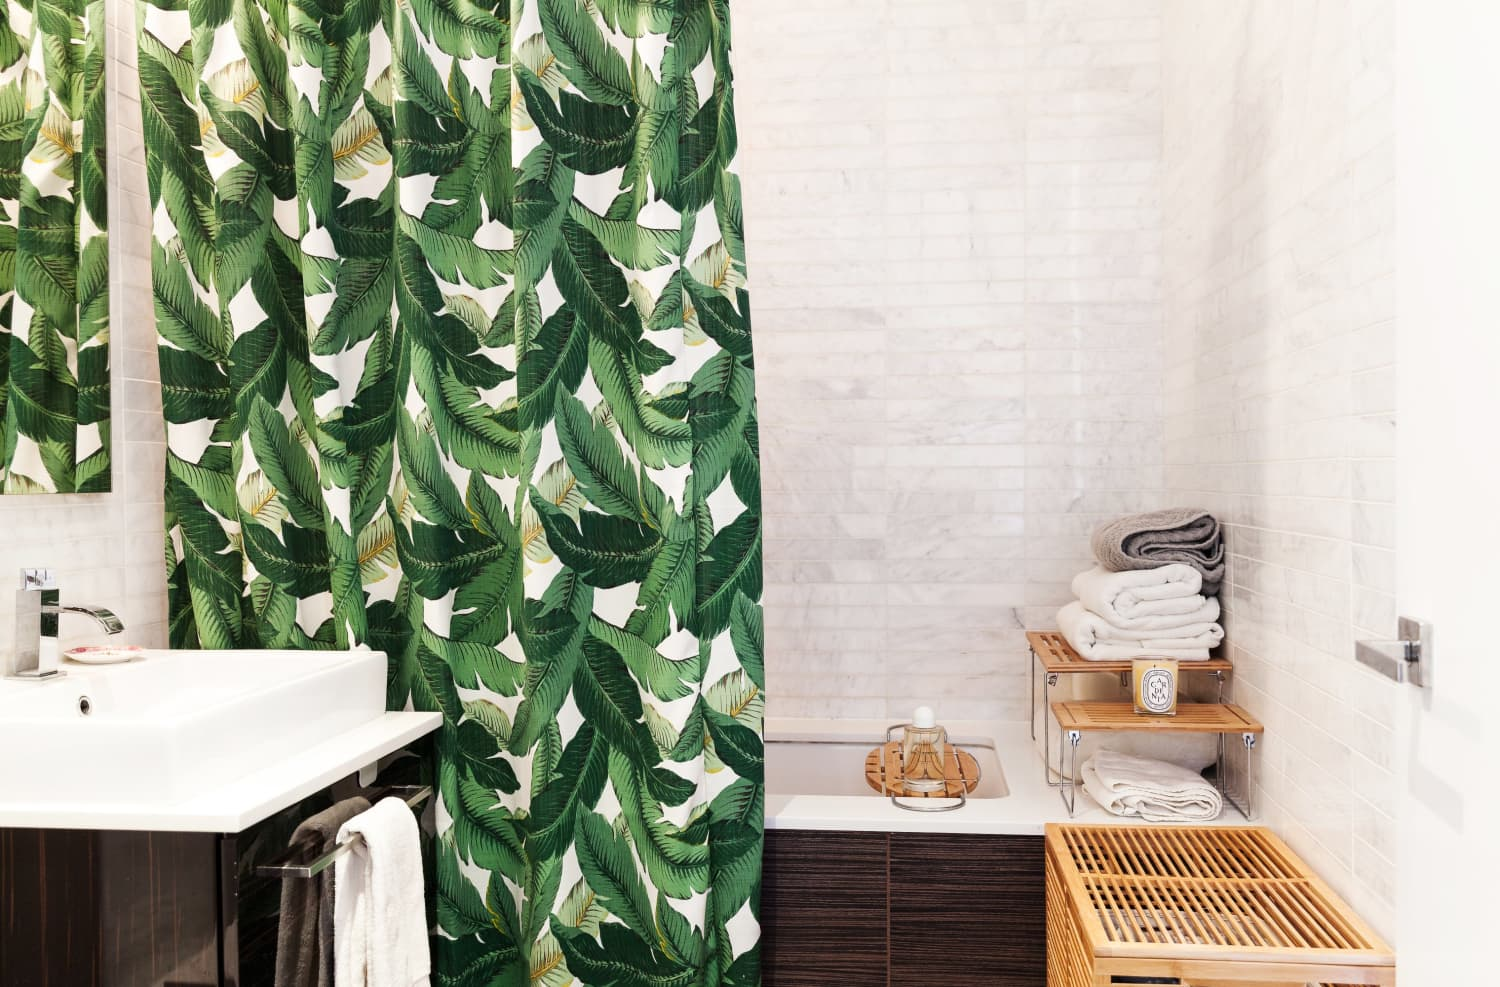 8 Fun Shower Curtains That Will Amp Up Your Morning Routine